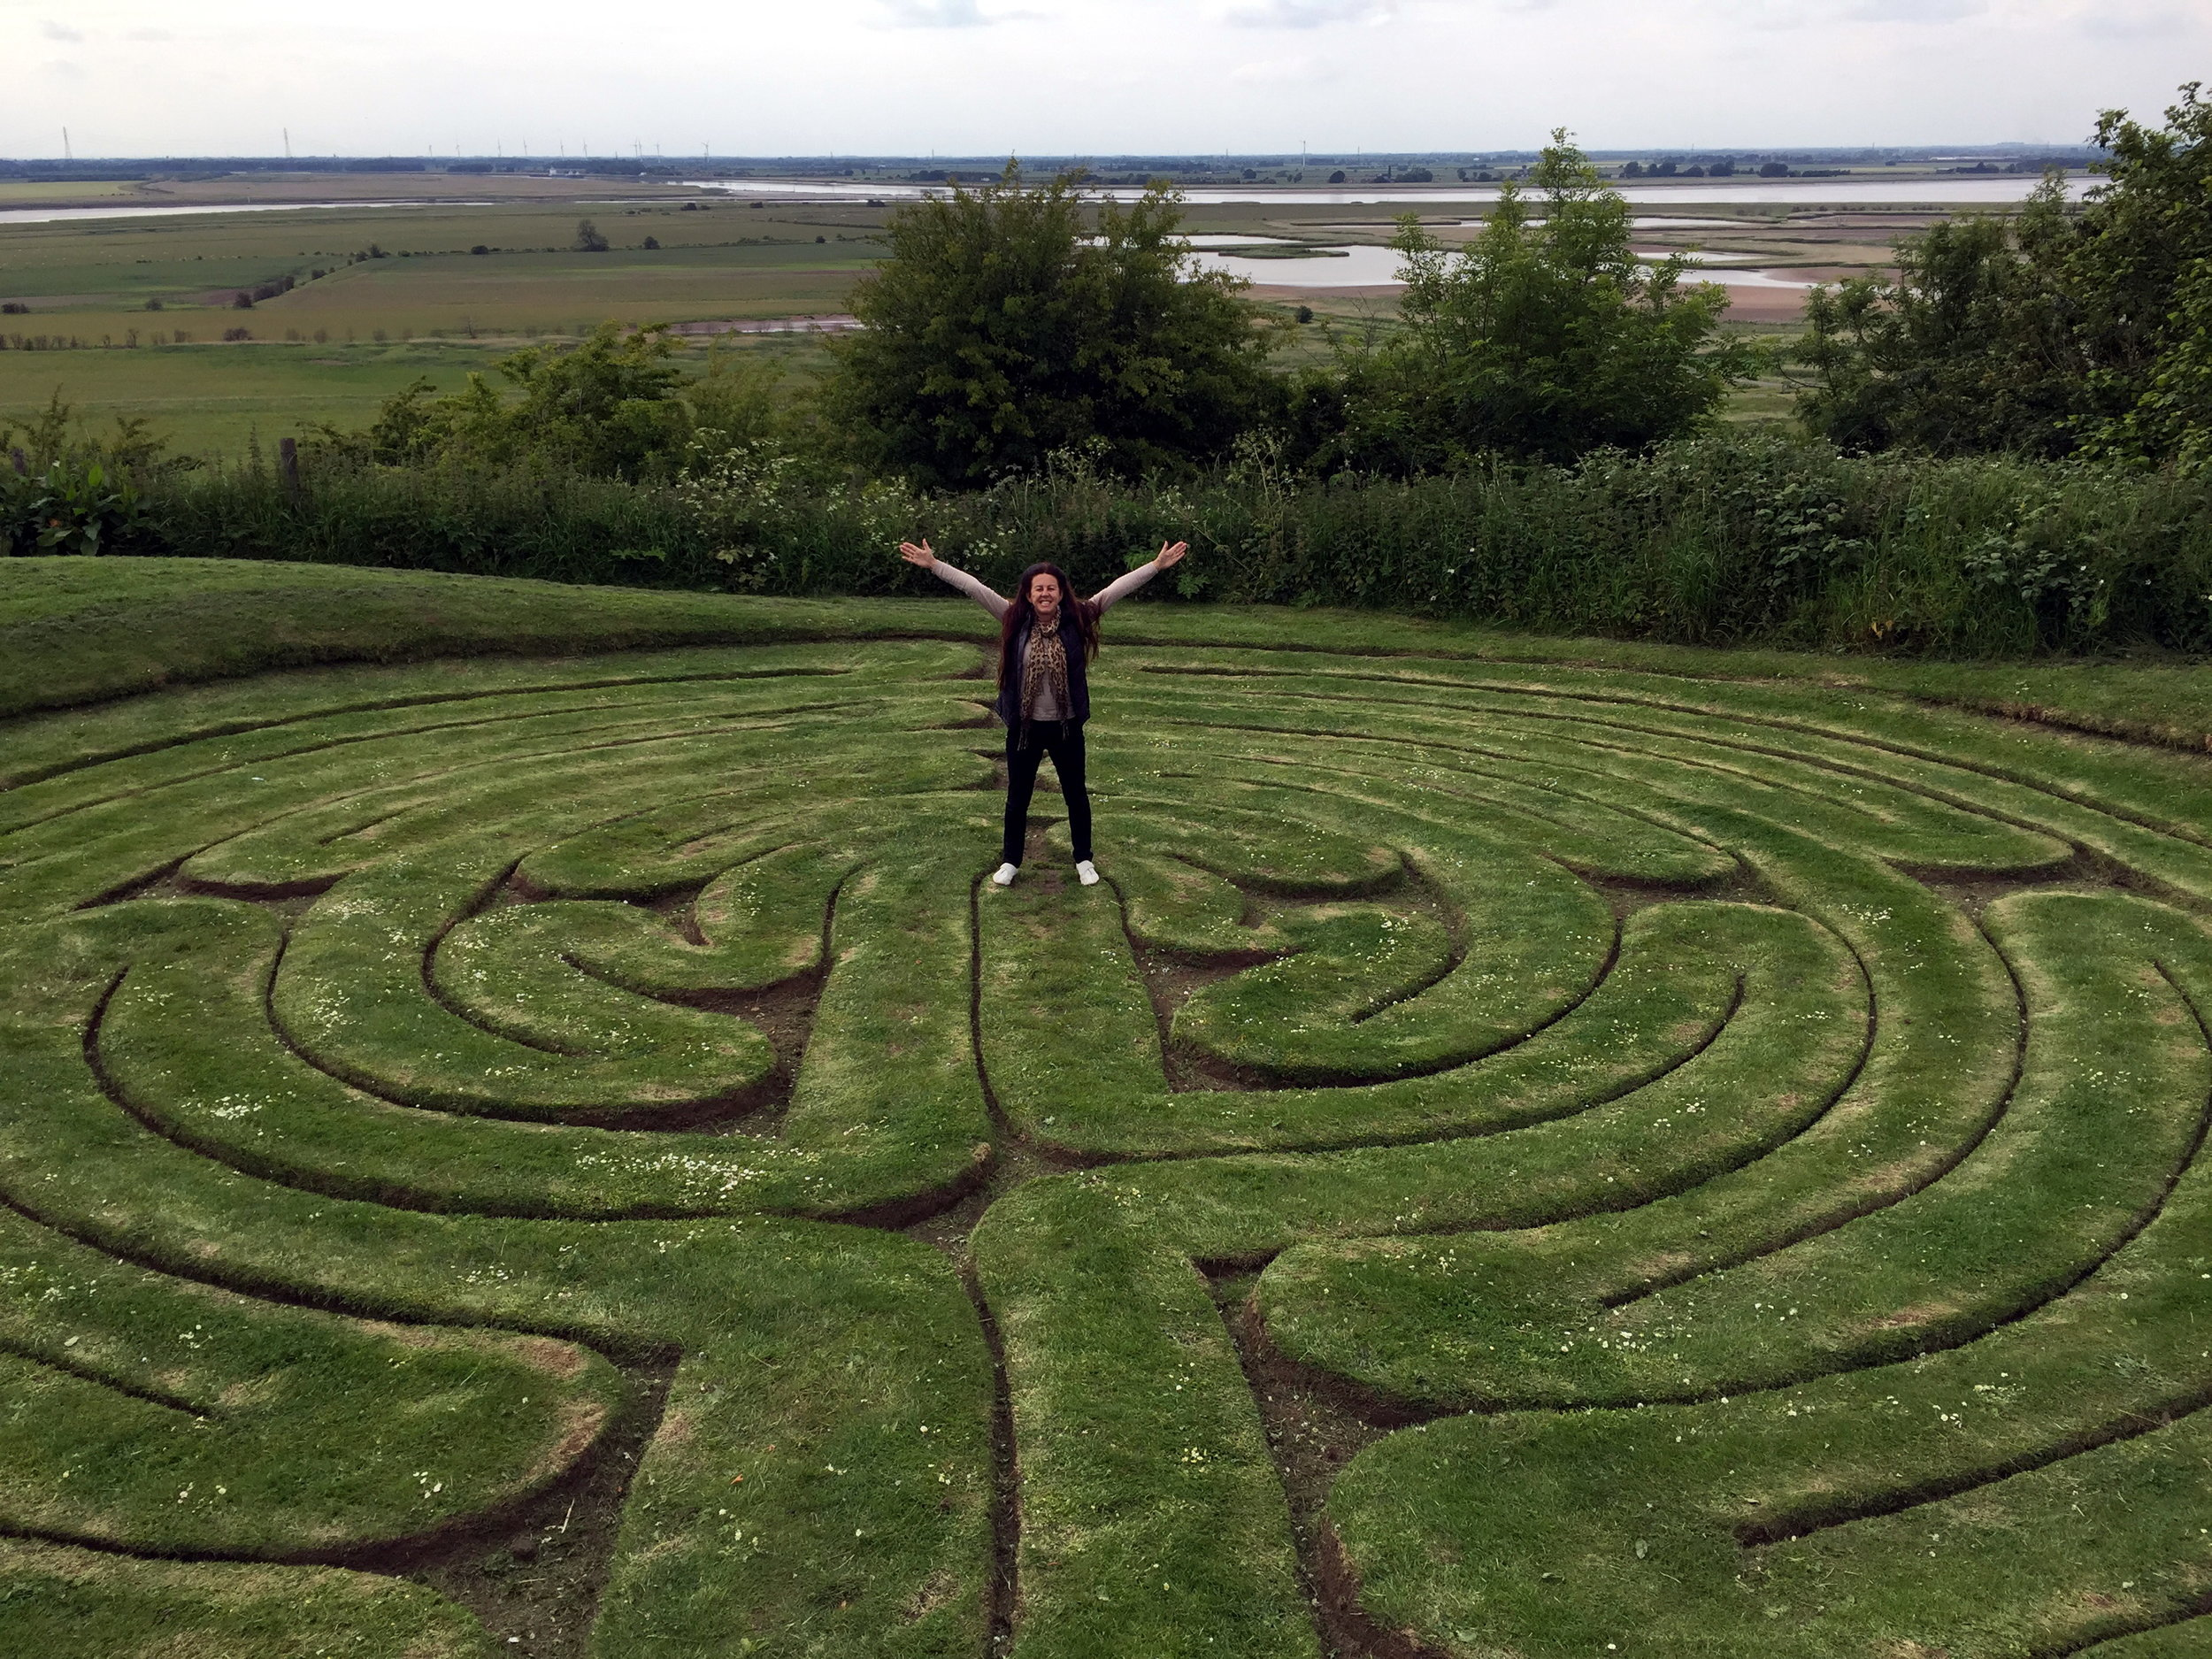 turf maze, UK maintained by villiagers for centuries.